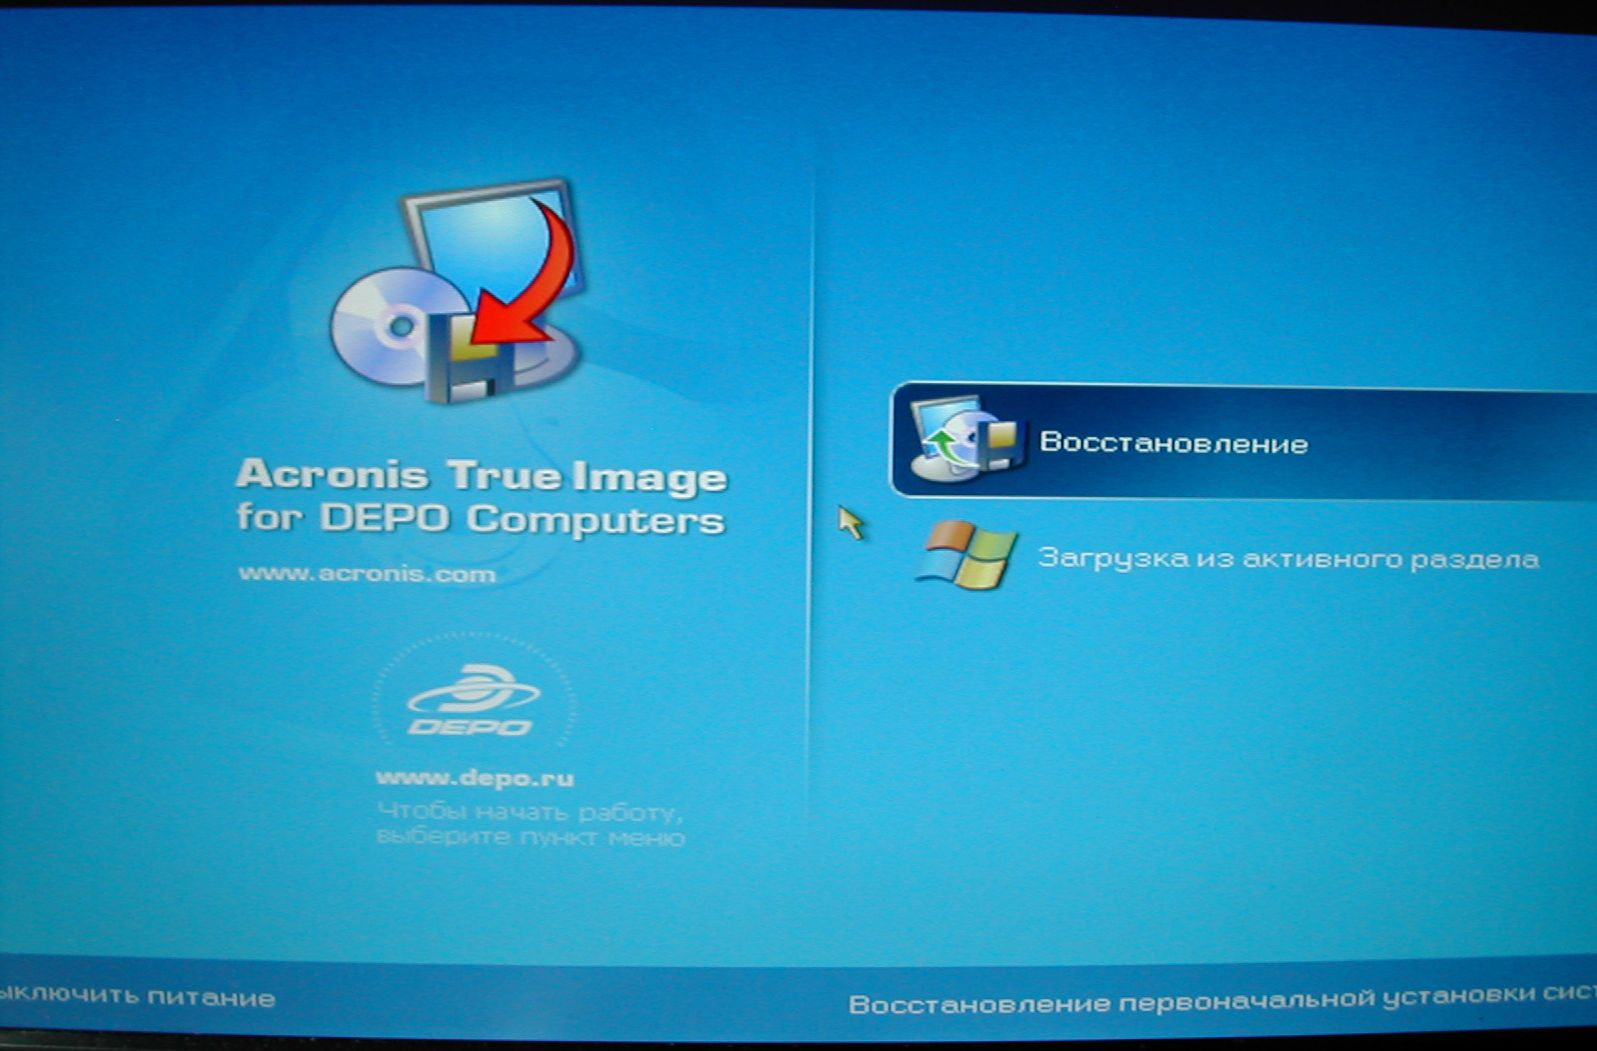 Acronis TRUE Image for DEPO Computers